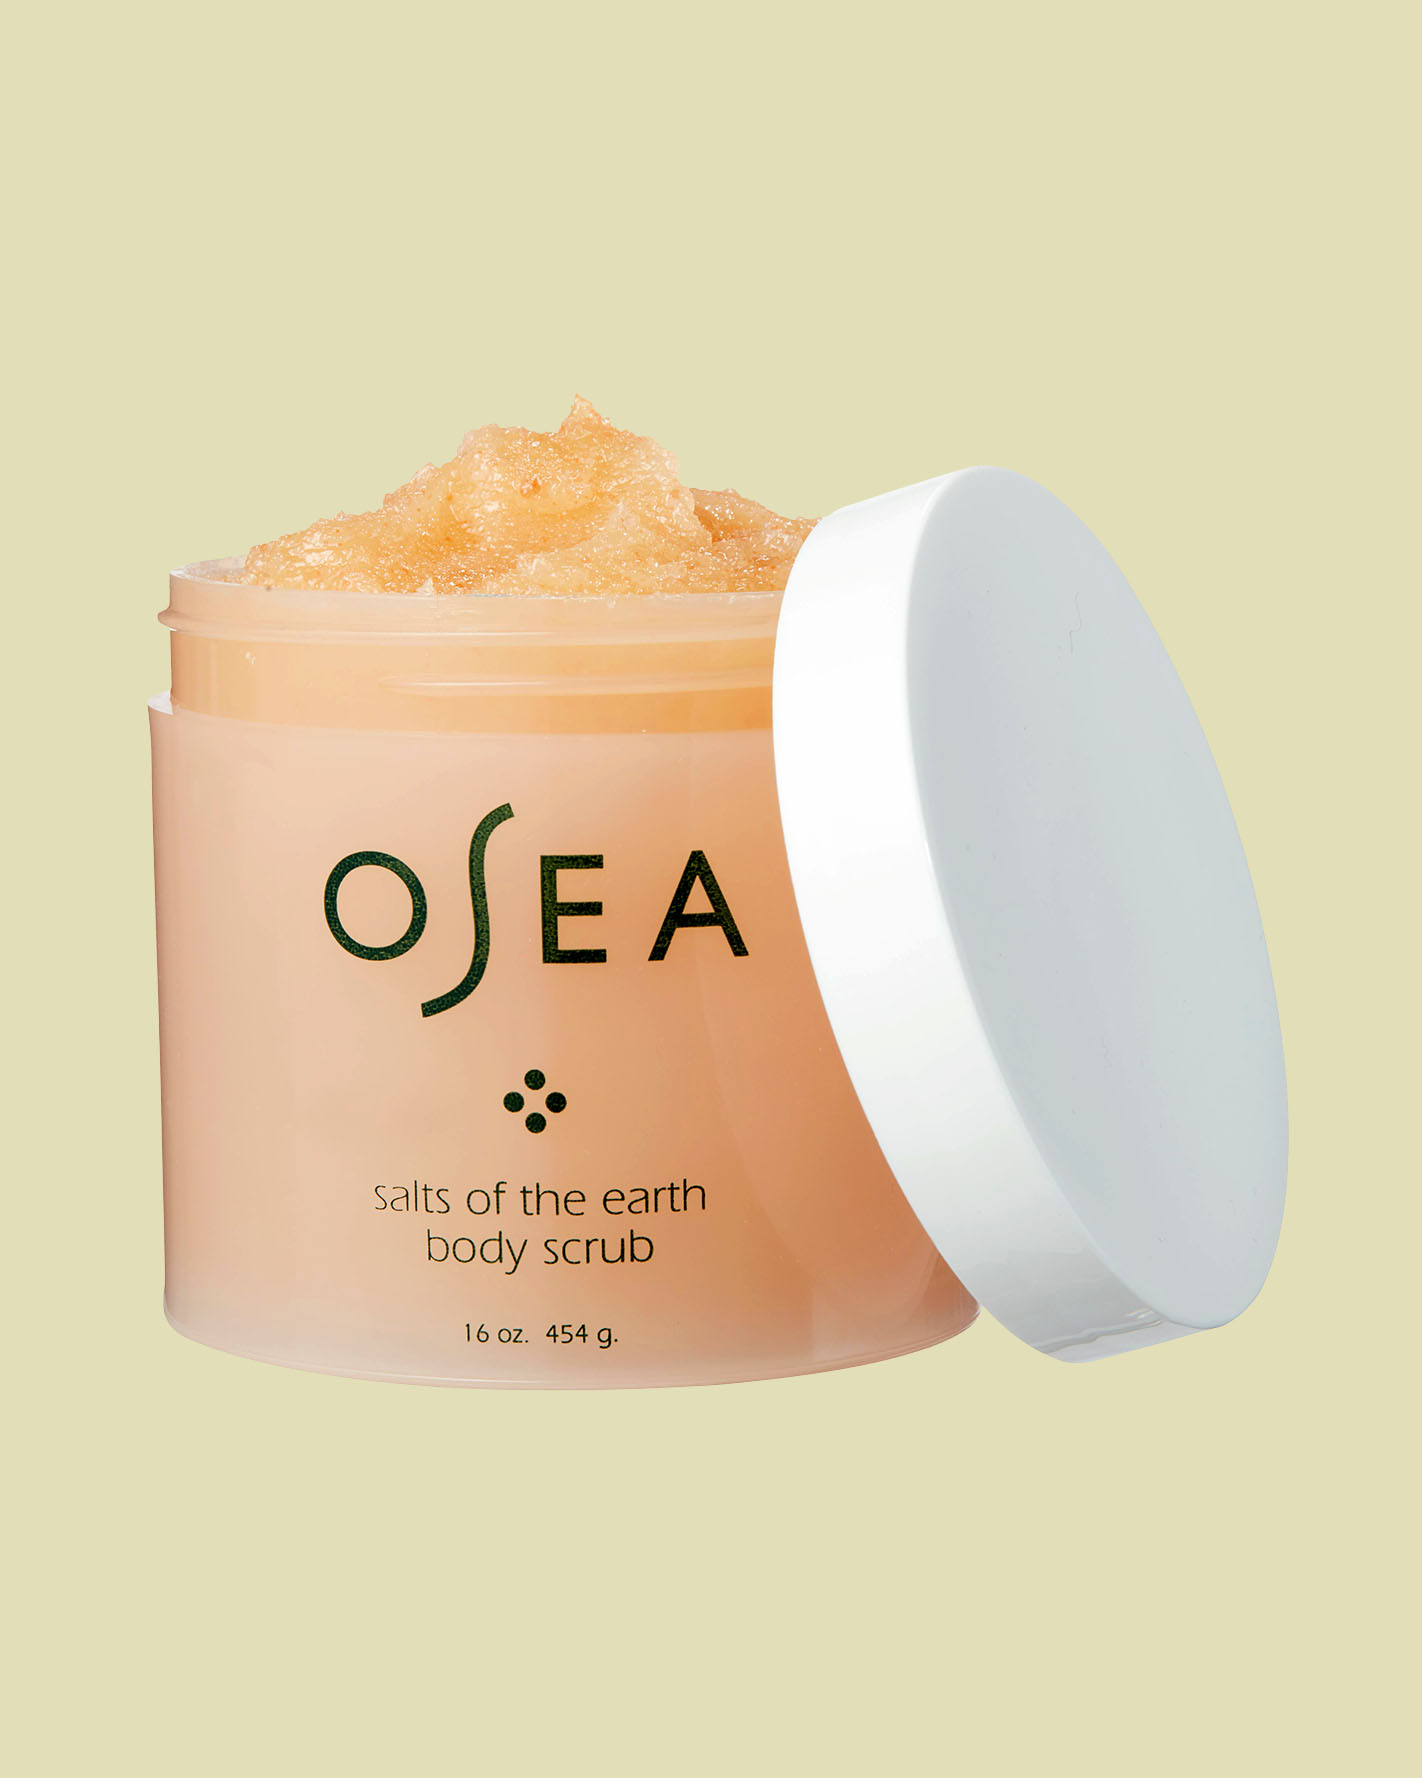 osea body scrub